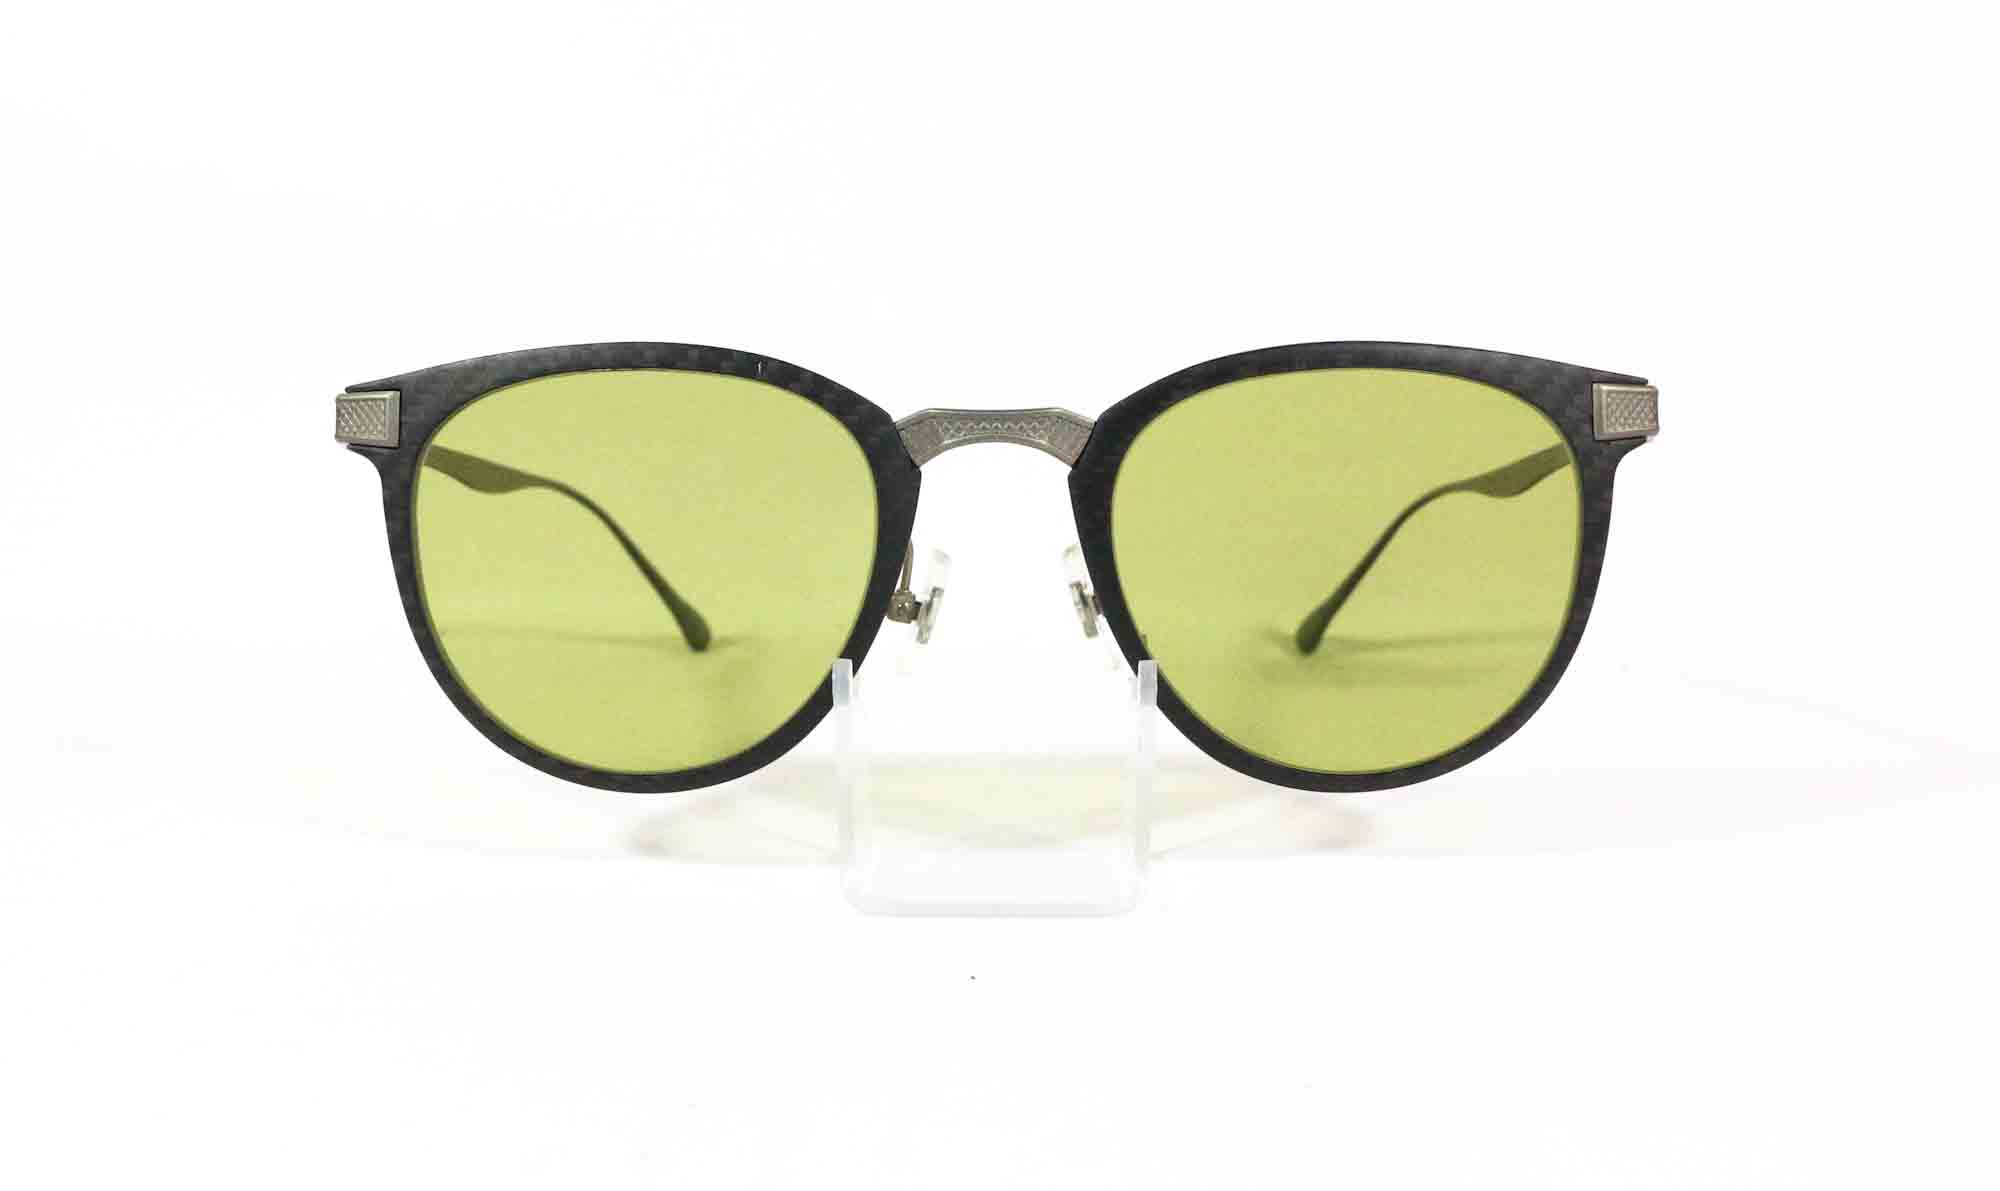 Zeque Polarised Fishing Sunglasses Jaz F-1881 Ease Green / Silver Blk (8300)